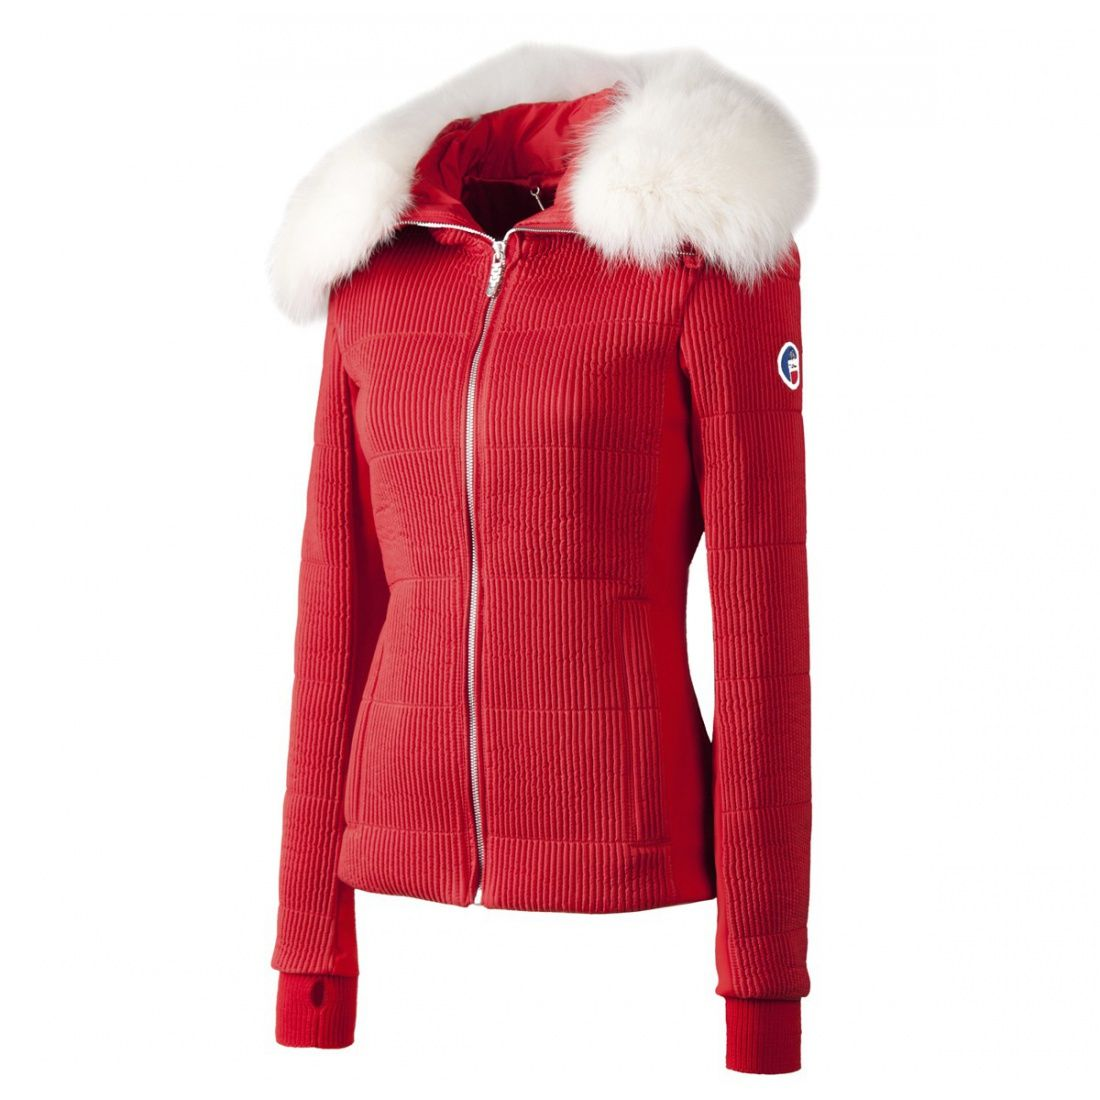 veste de ski morzine outerwear pinterest vestes ferrari et skier. Black Bedroom Furniture Sets. Home Design Ideas